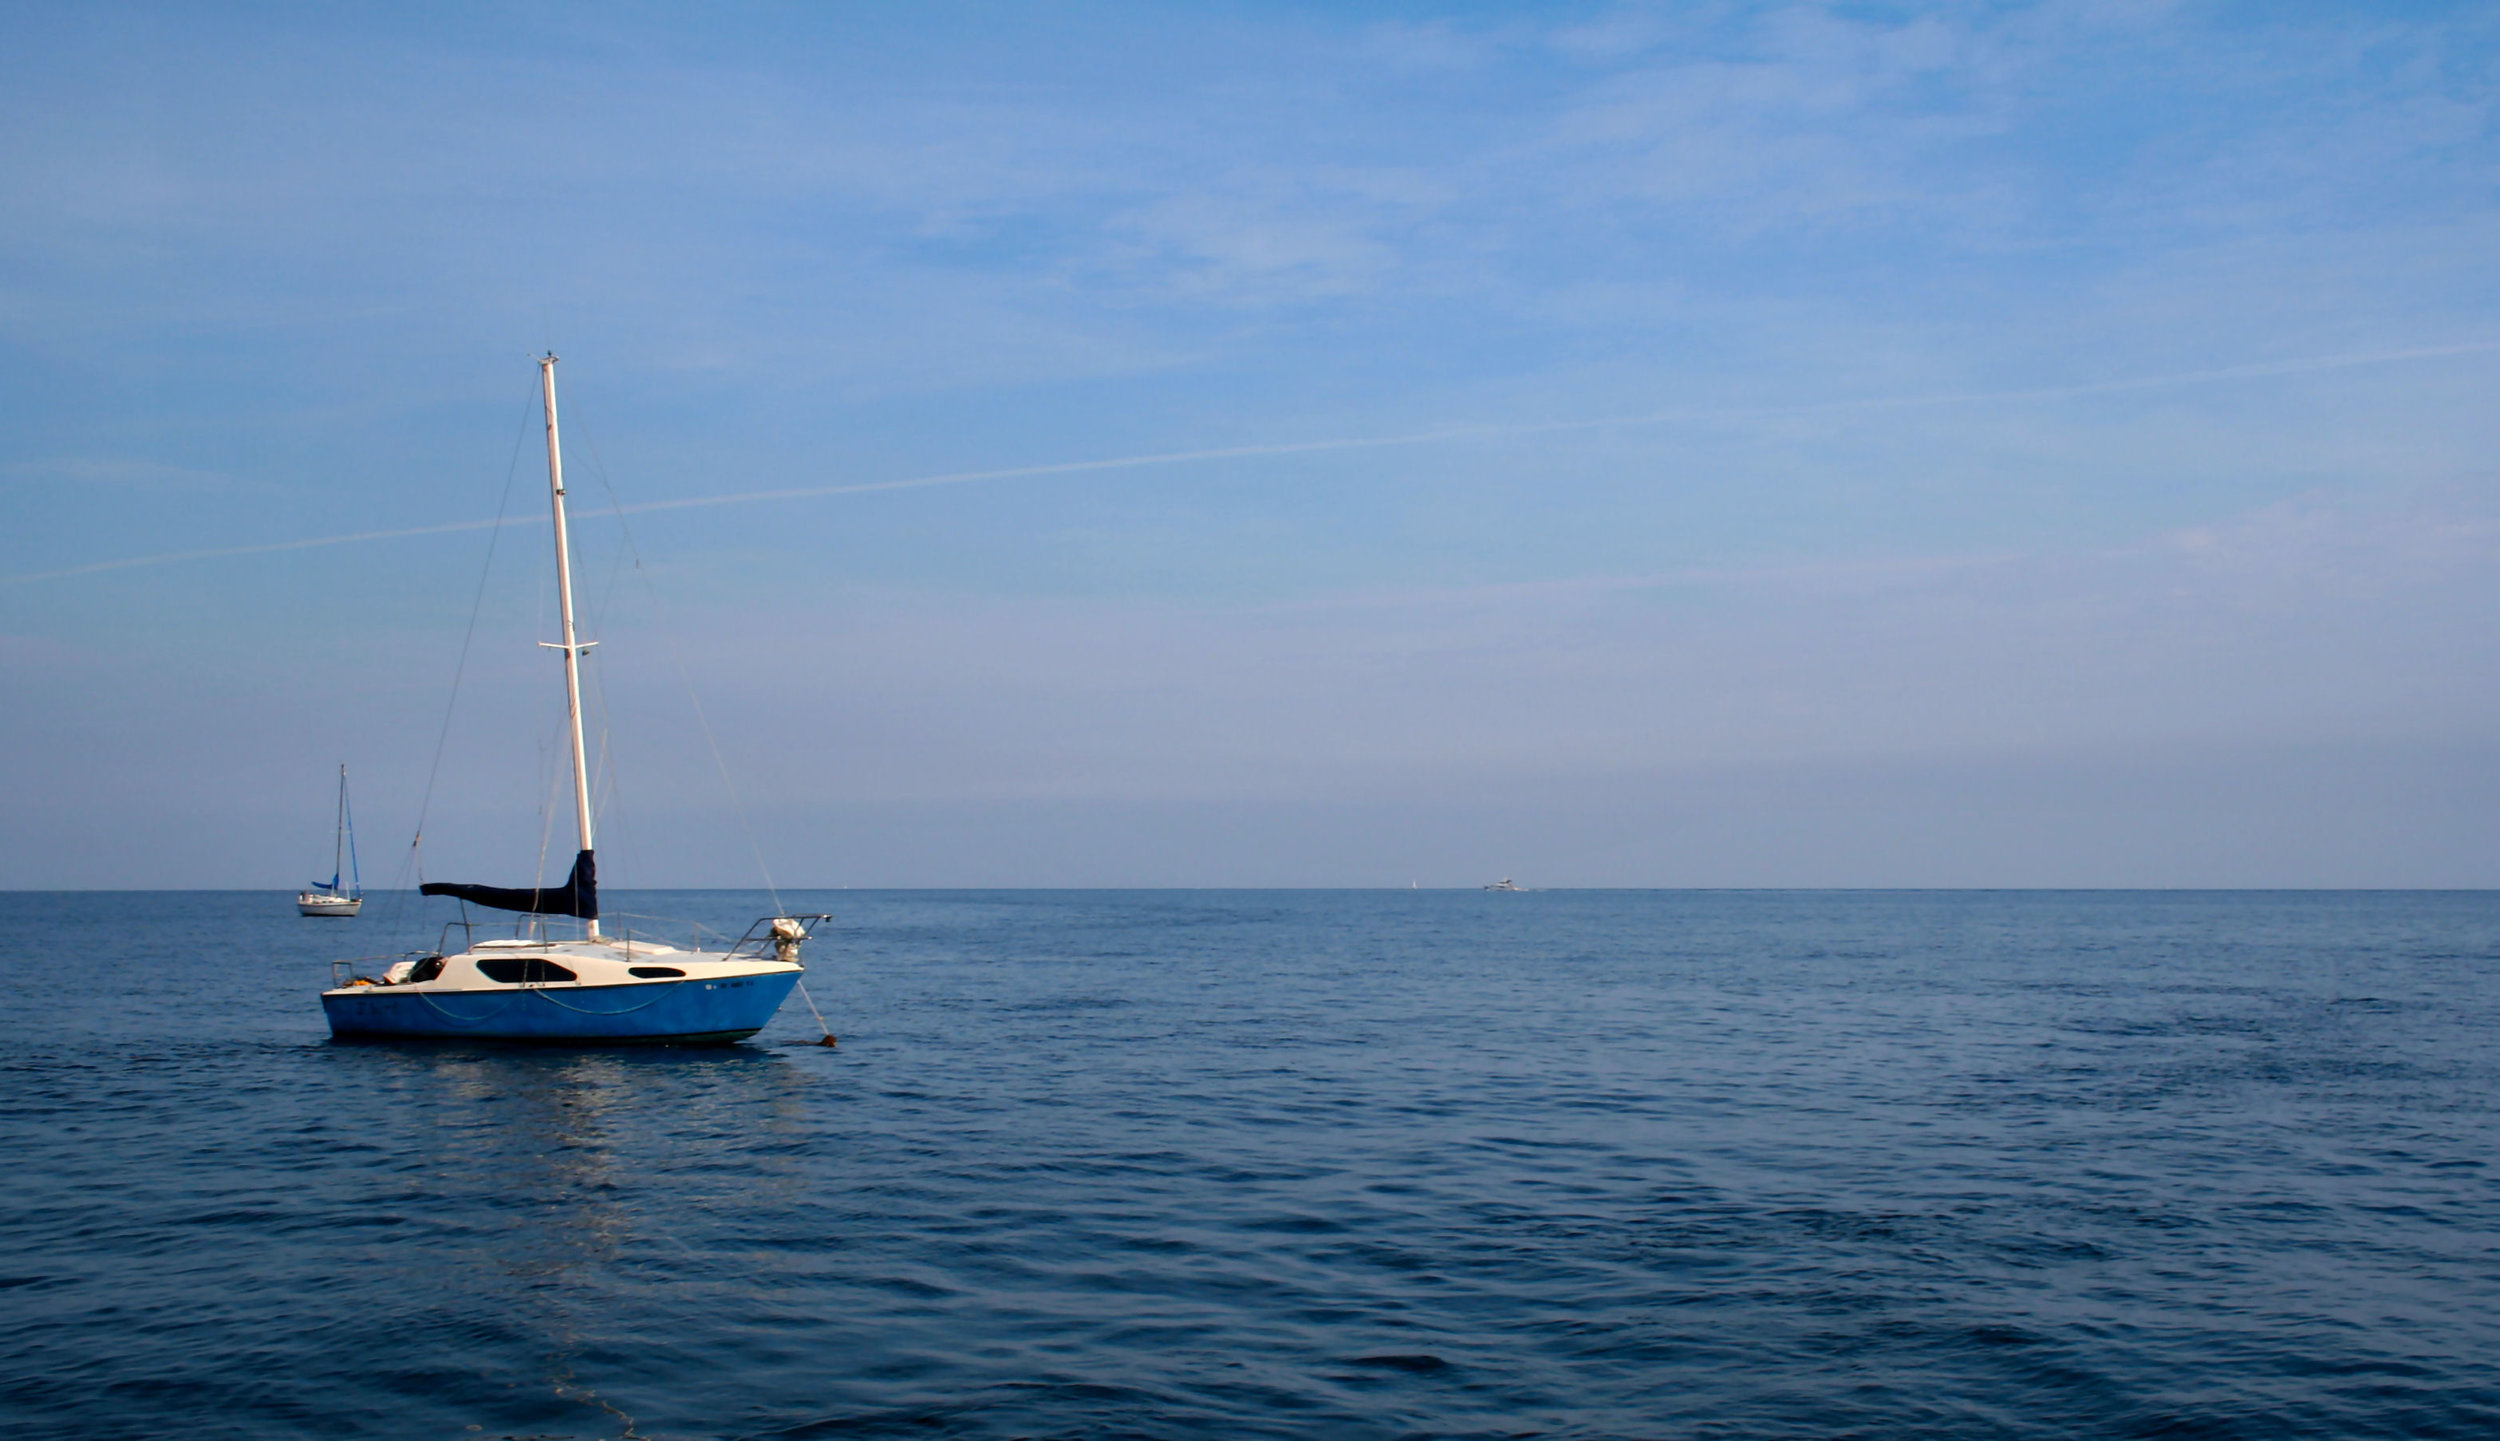 Sail boat in calm water and sunlight against bright blue sky